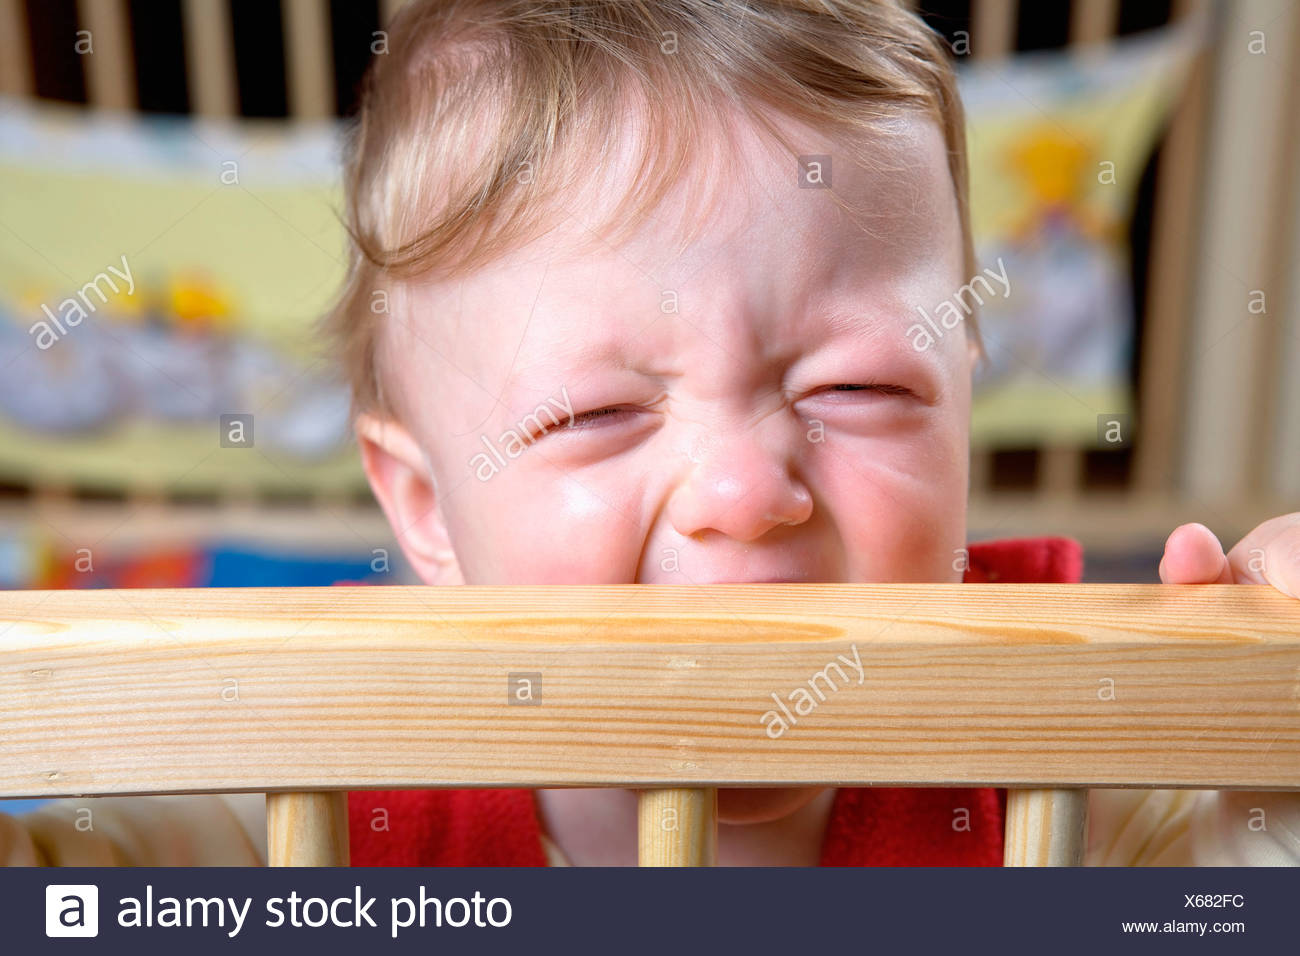 6 - 12 months 6 to 12 months Angry Babies Baby Bar Bars Caucasian Caucasians Child Children Close-up Conte - Stock Image